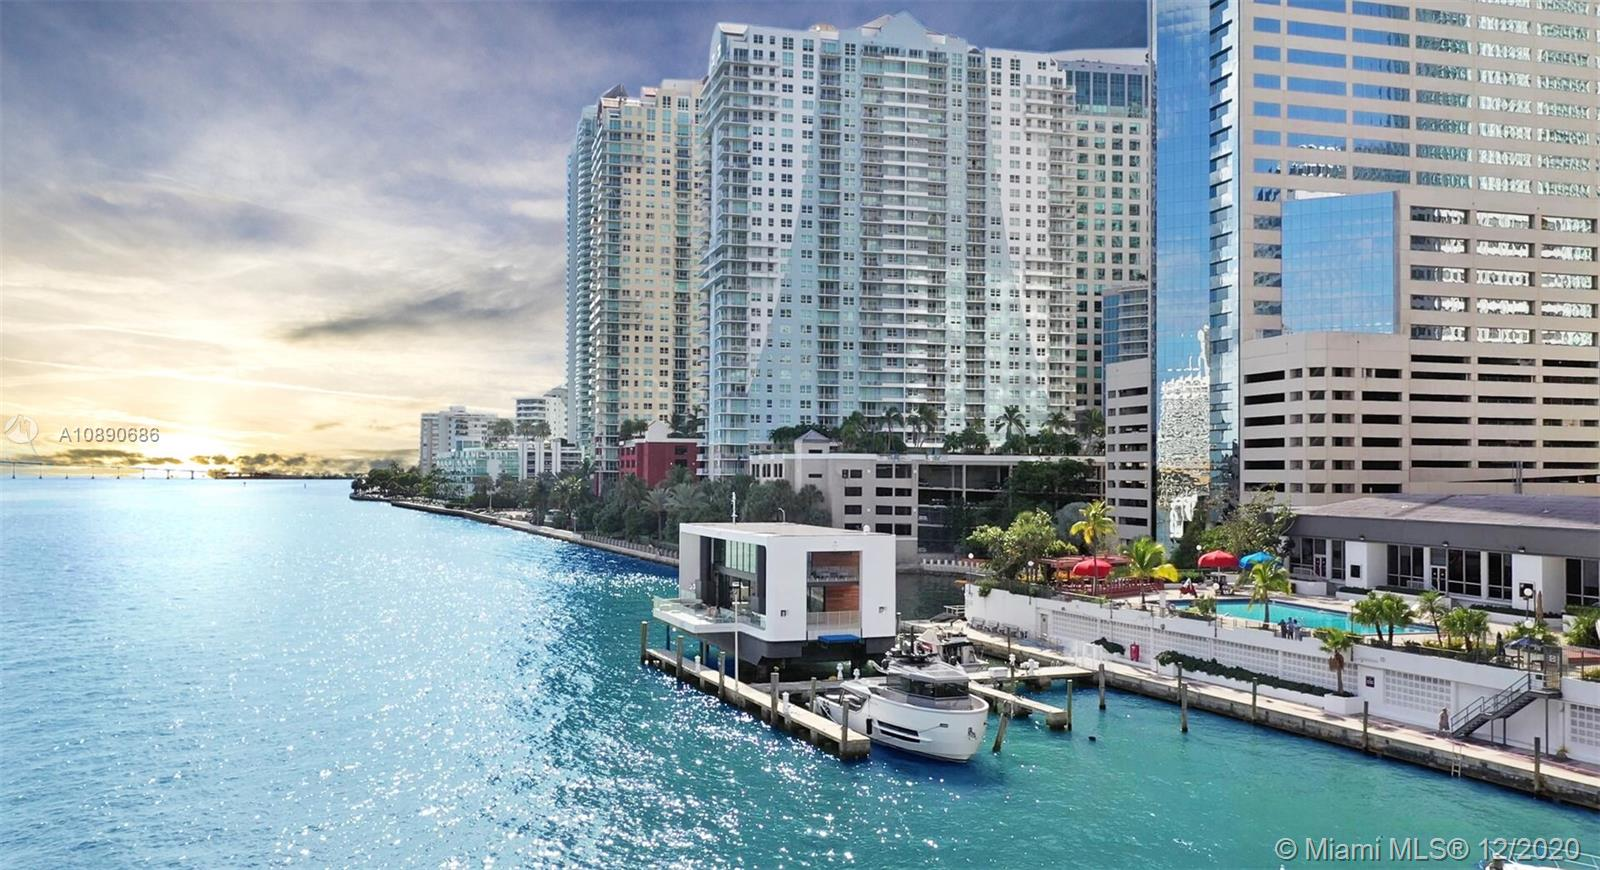 Immaculate mansion on the water in Brickell! Located at the lavish Vice City Marina outside world-famous Brickell Key & just steps from Miami's 5-star dining & nightlife, this is the only property of its kind. A blend between a modern Miami mansion and a mega-yacht, the Arkup allows you to live on the water and bask in everything Miami has to offer without paying property taxes, condo dues, an electric bill or a water bill. Sporting 4,350 square ft of perfectly curated indoor & outdoor space & built on retractable legs that elevate the mansion out of the water or cruise like a yacht to any of Miami's hot spots, the Arkup is absolutely unmatched for wow-factor, luxury, privacy & convenience. Amazing for an end-user, as a second home or as a lucrative investment with no rental restrictions.